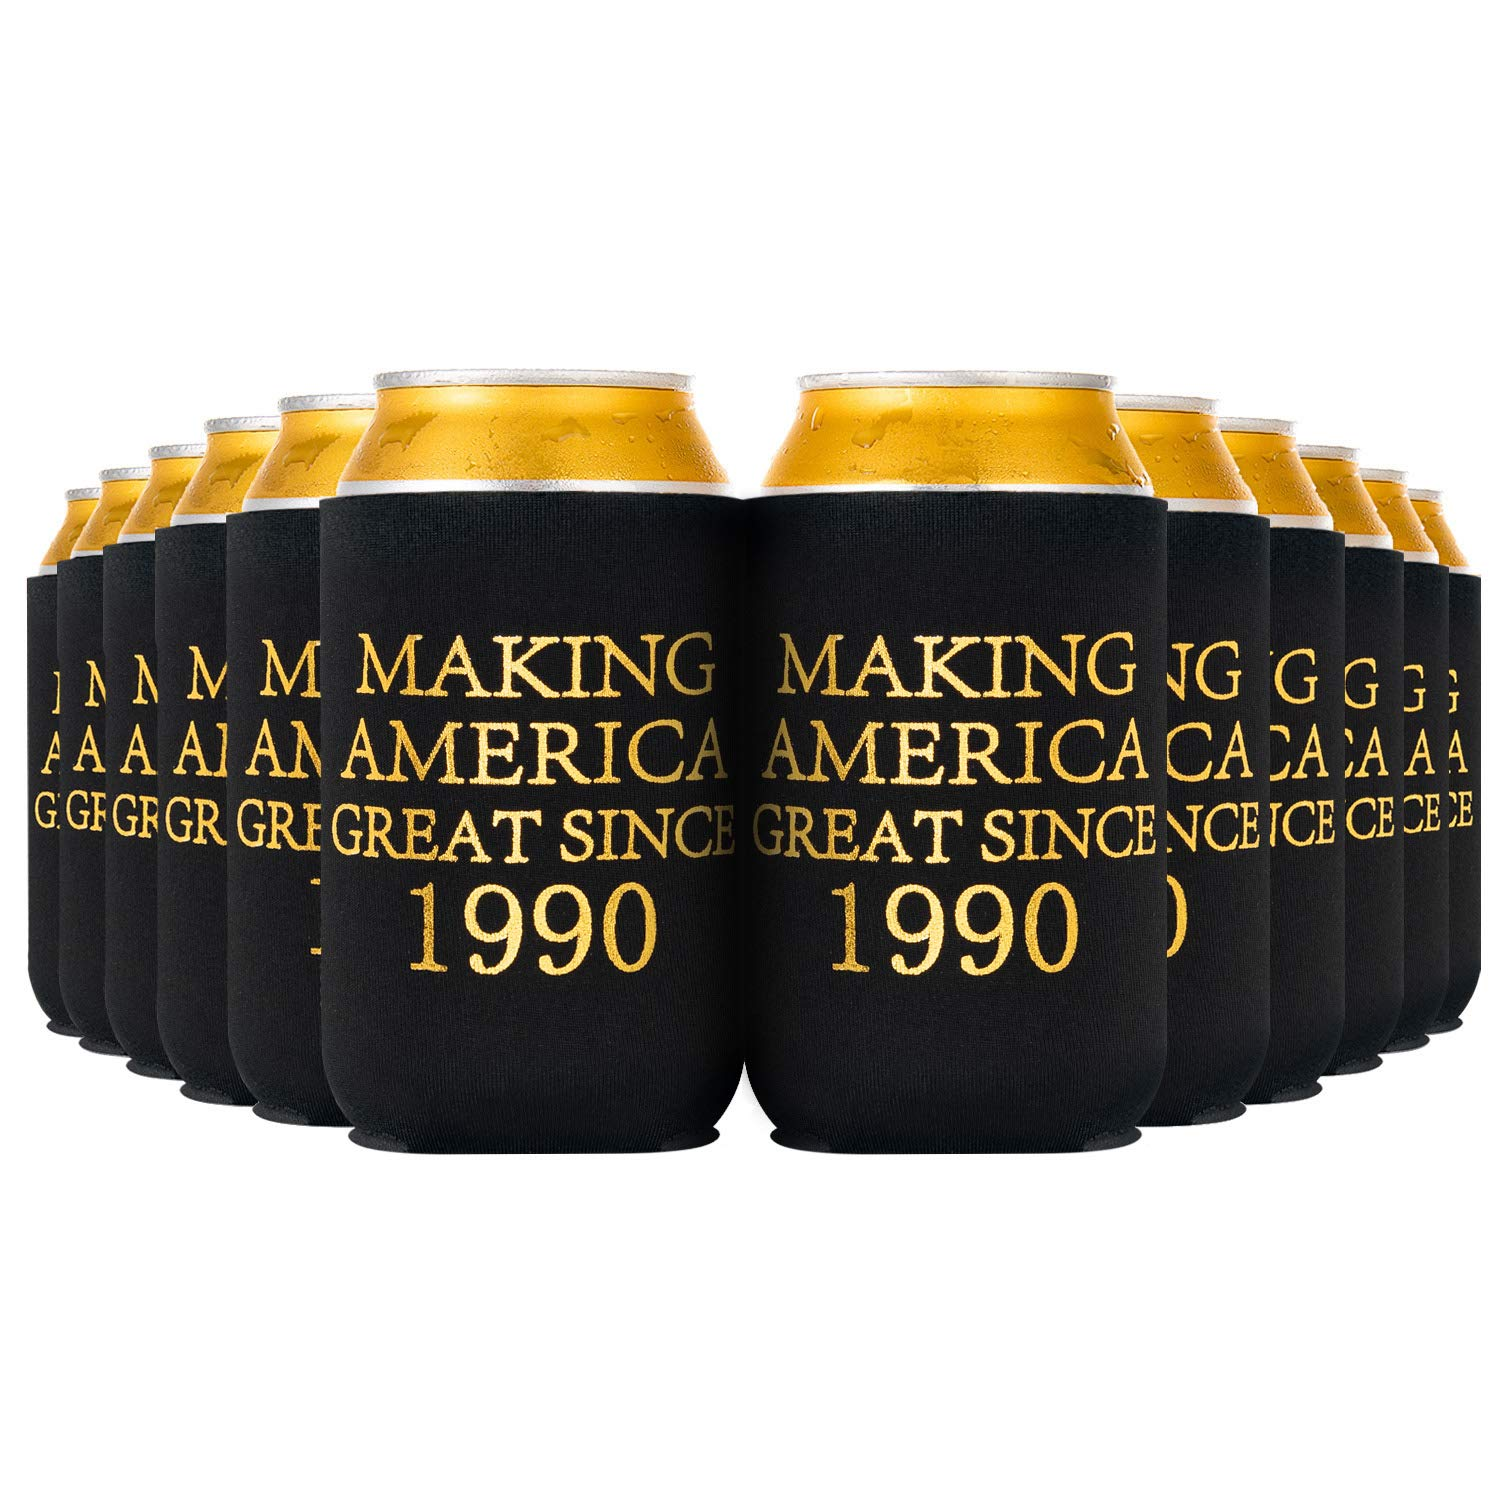 Crisky 30th Birthday Beer Sleeve, 30th Birthday Can Cooler Insulated Covers, 30th Birthday Decorations Black Gold Making America Great Since 1990, Neoprene Coolers for Soda, Beer, Can Beverage, 24 Pcs